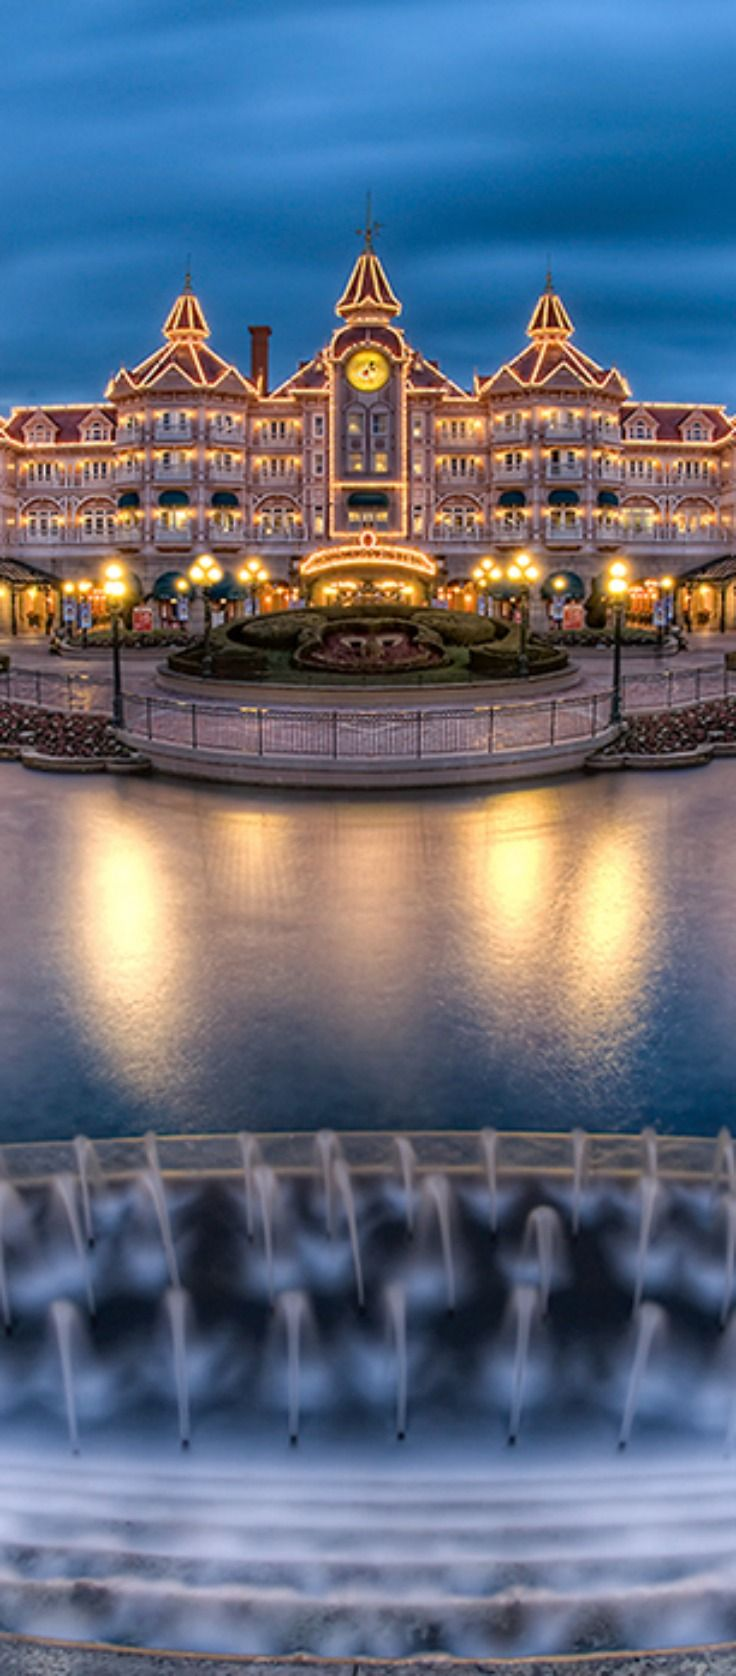 Disneyland PARIS, EuroDisney, France